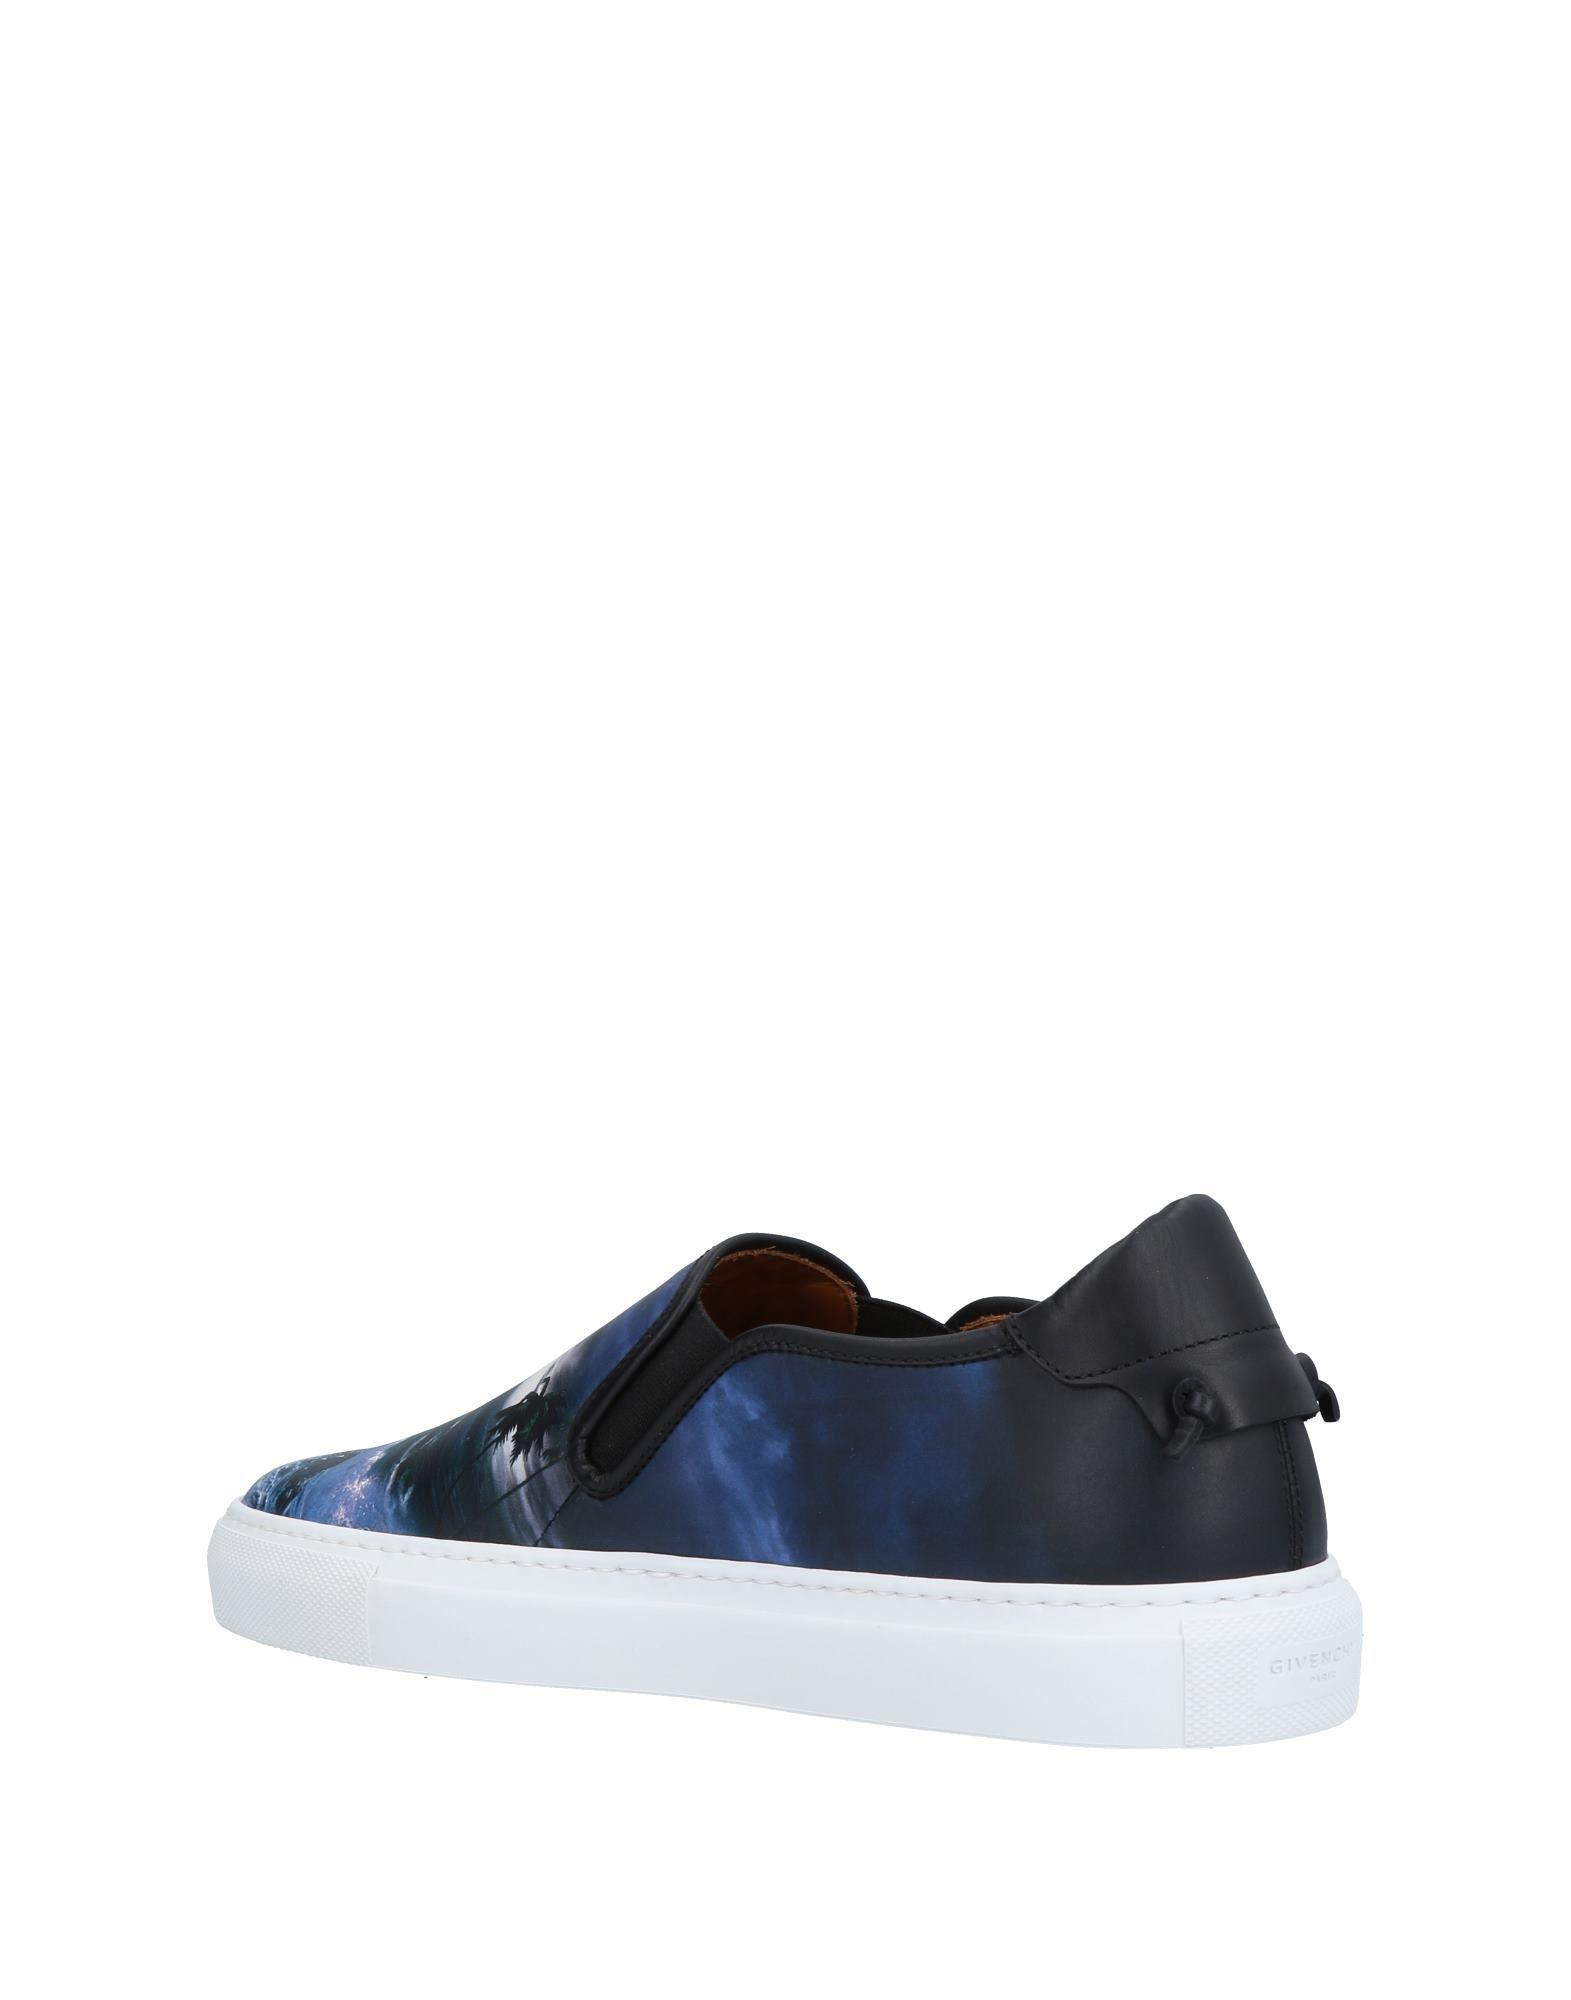 Givenchy Leather Low-tops & Sneakers in Blue